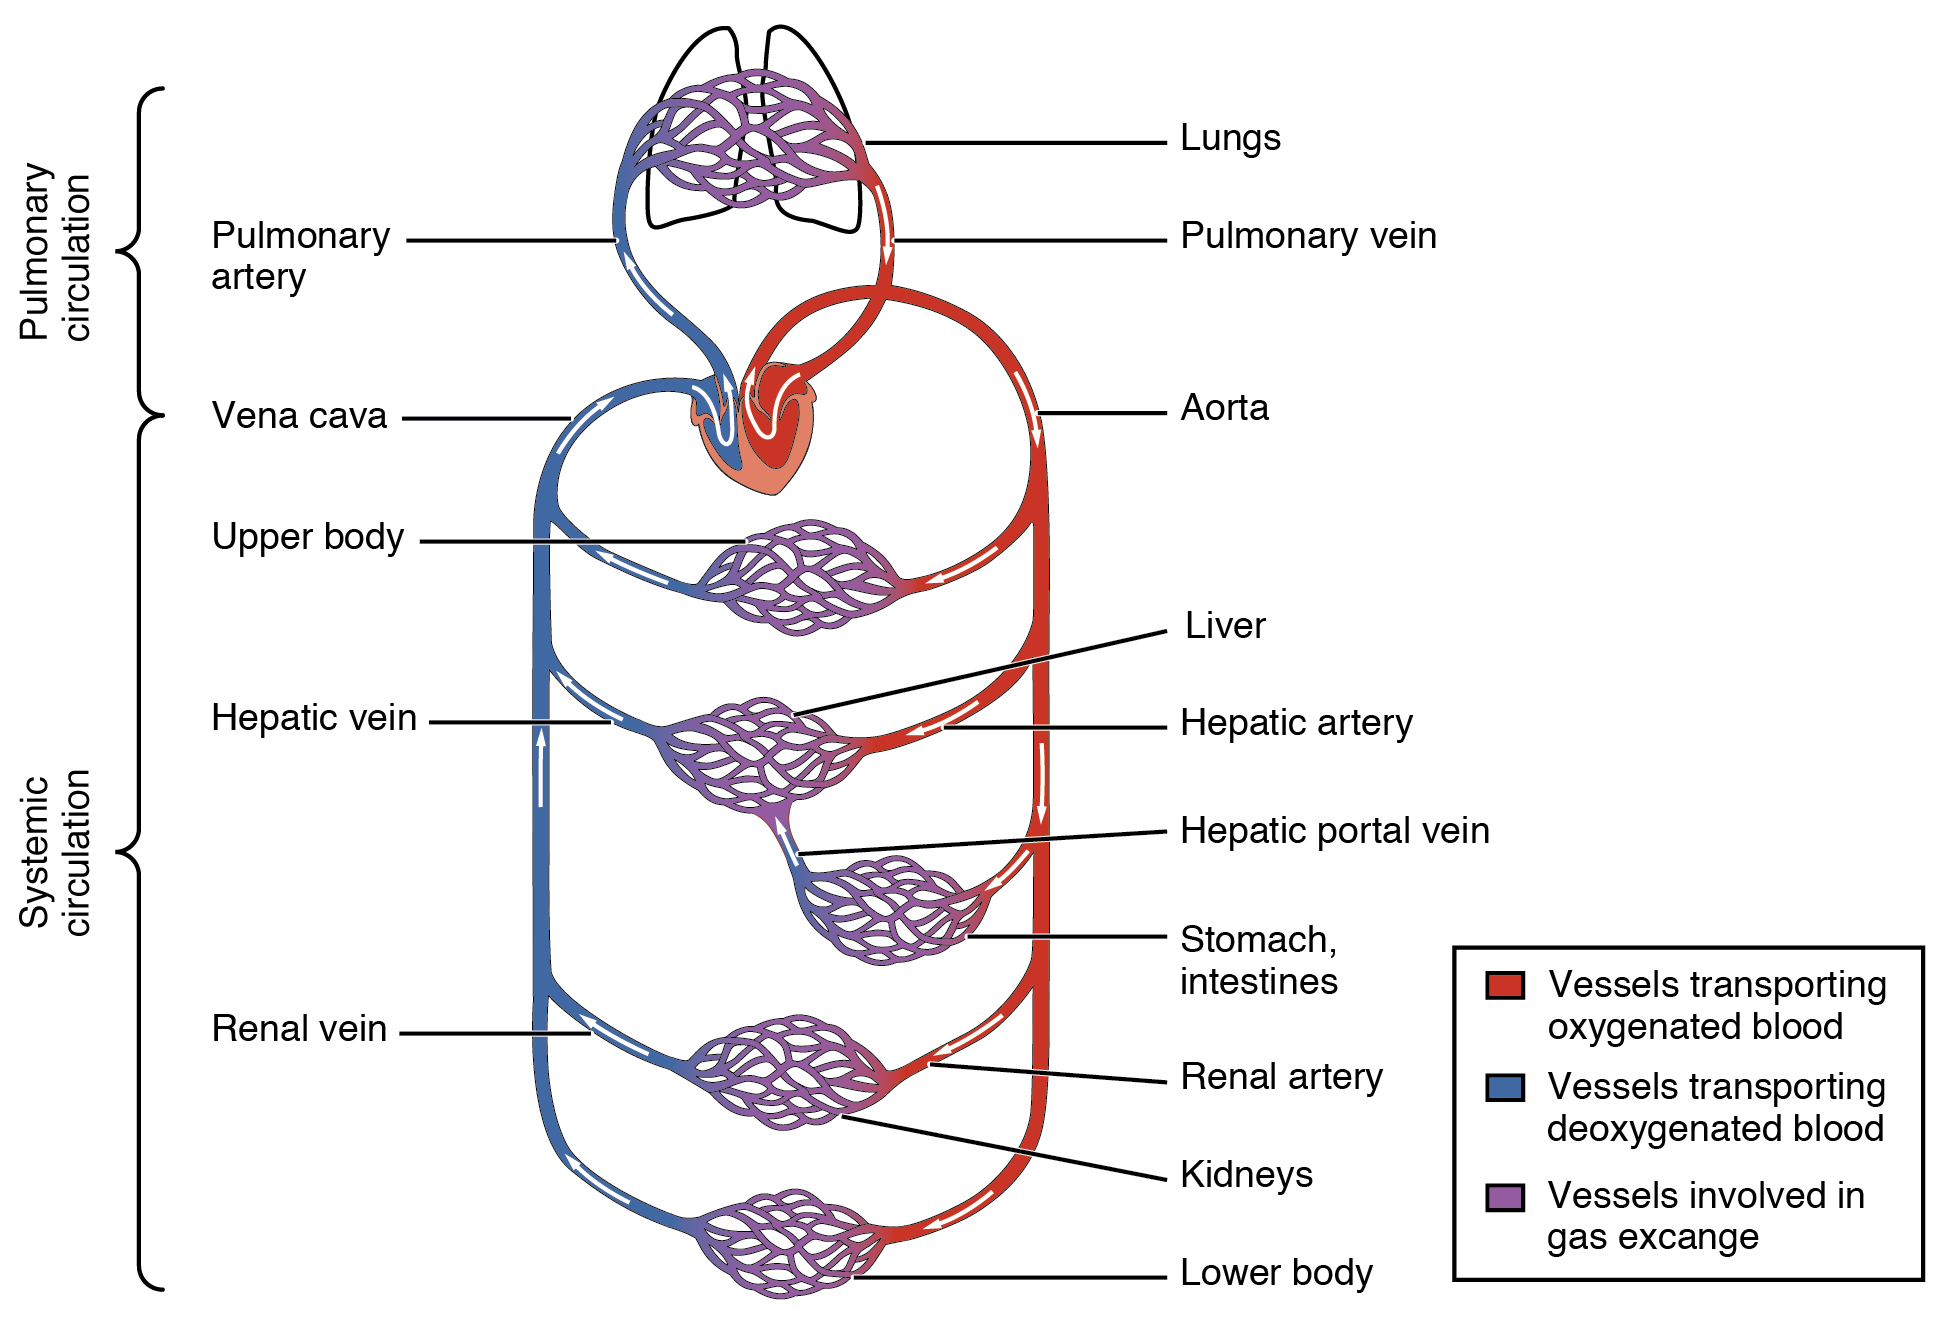 20.1 Structure and Function of Blood Vessels – Anatomy and Physiology